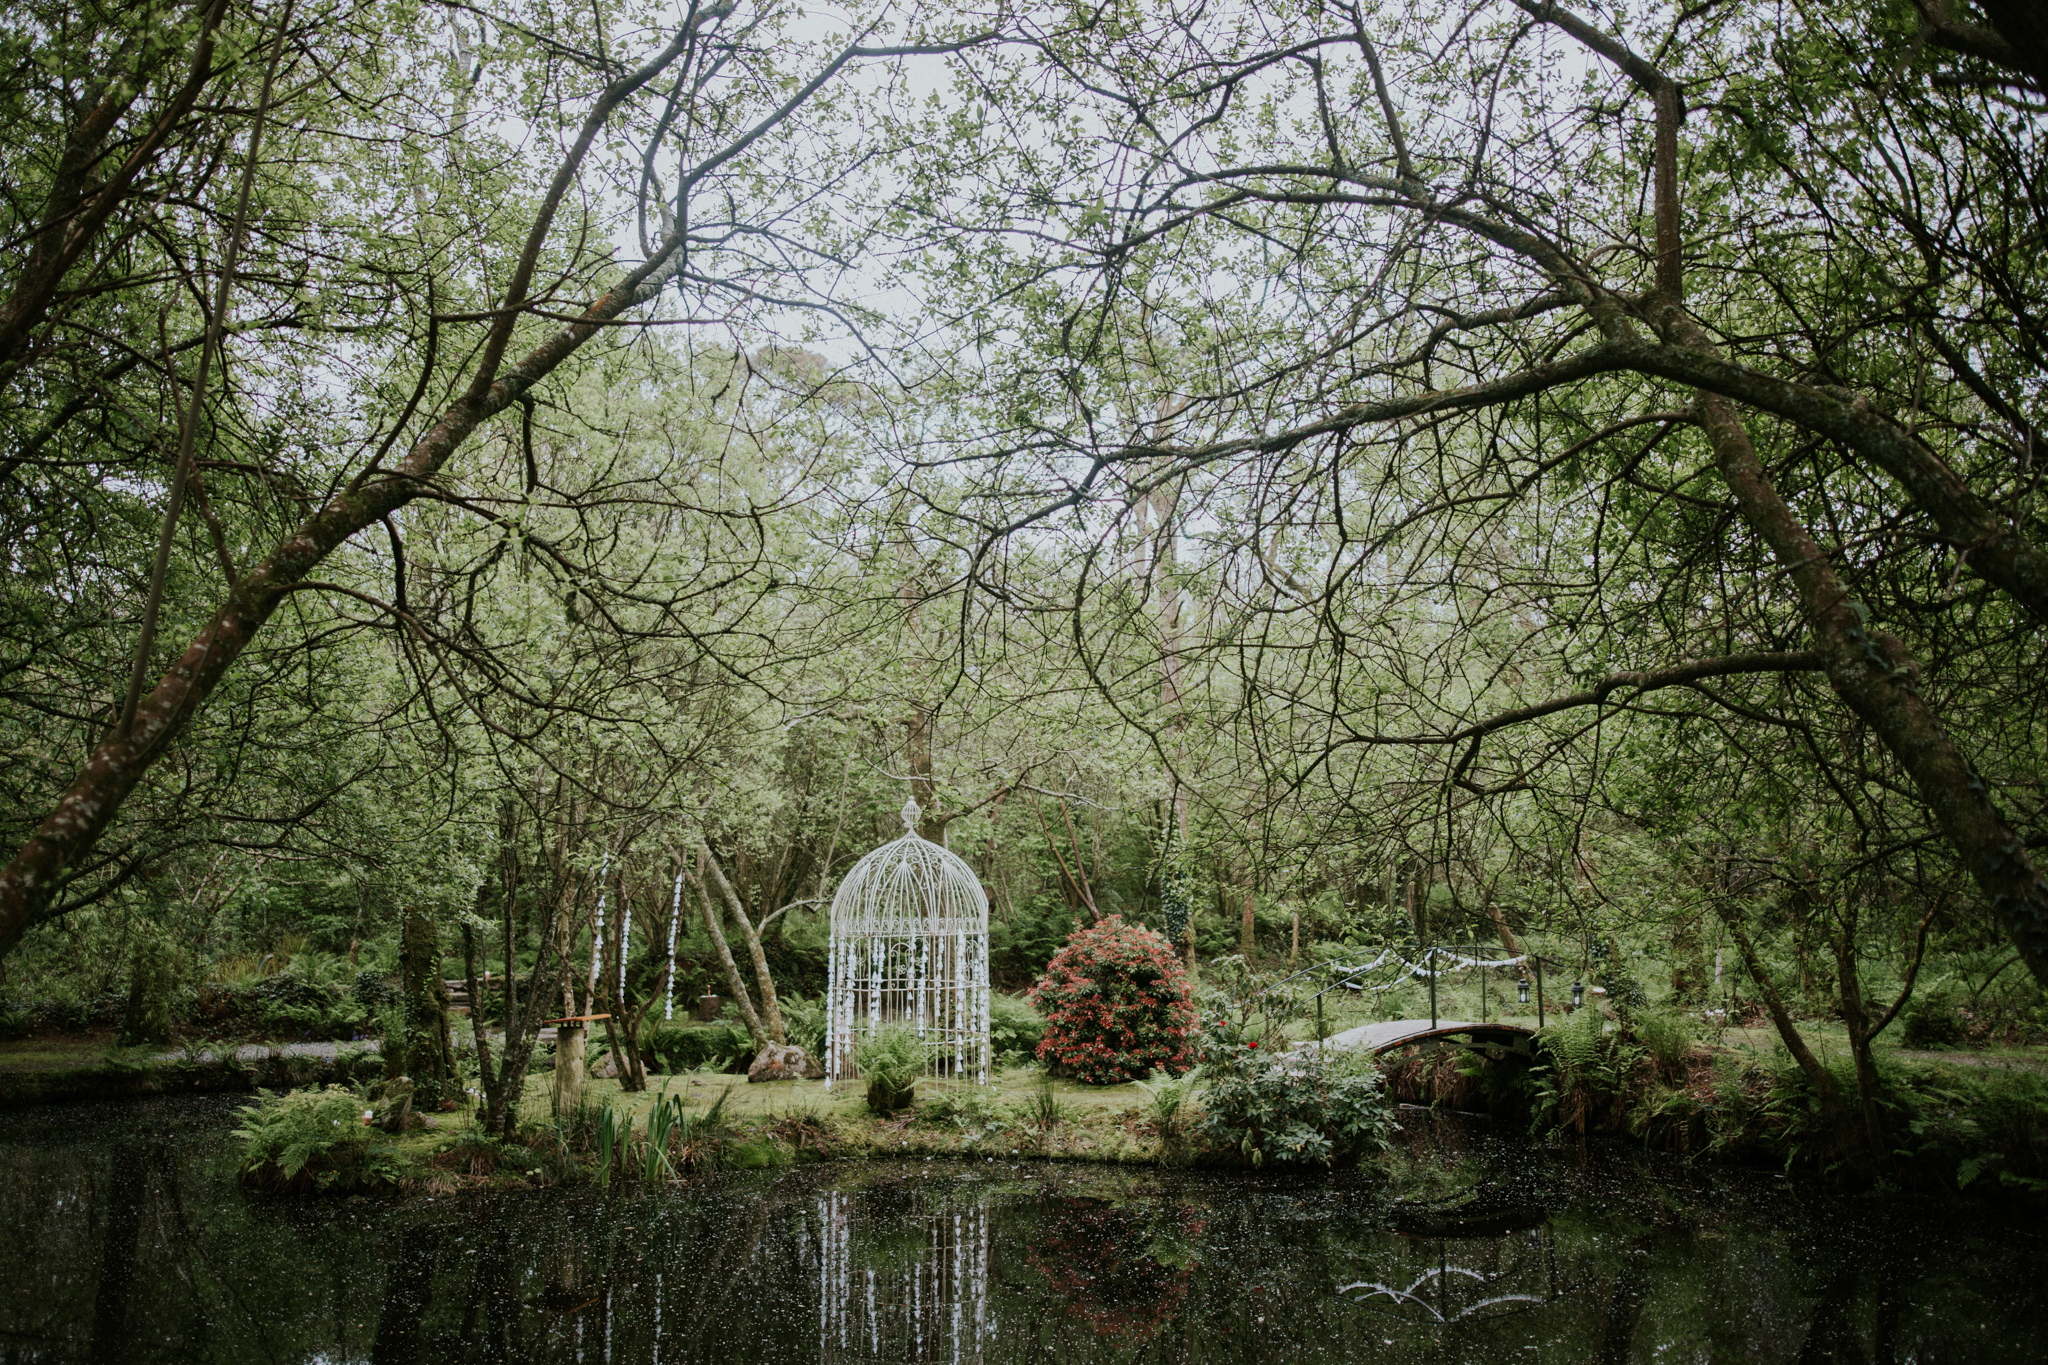 The outdoor boho theme wedding ceremony at the Inish Beg Estate in Cork, Ireland Wedding and Elopement Photographer